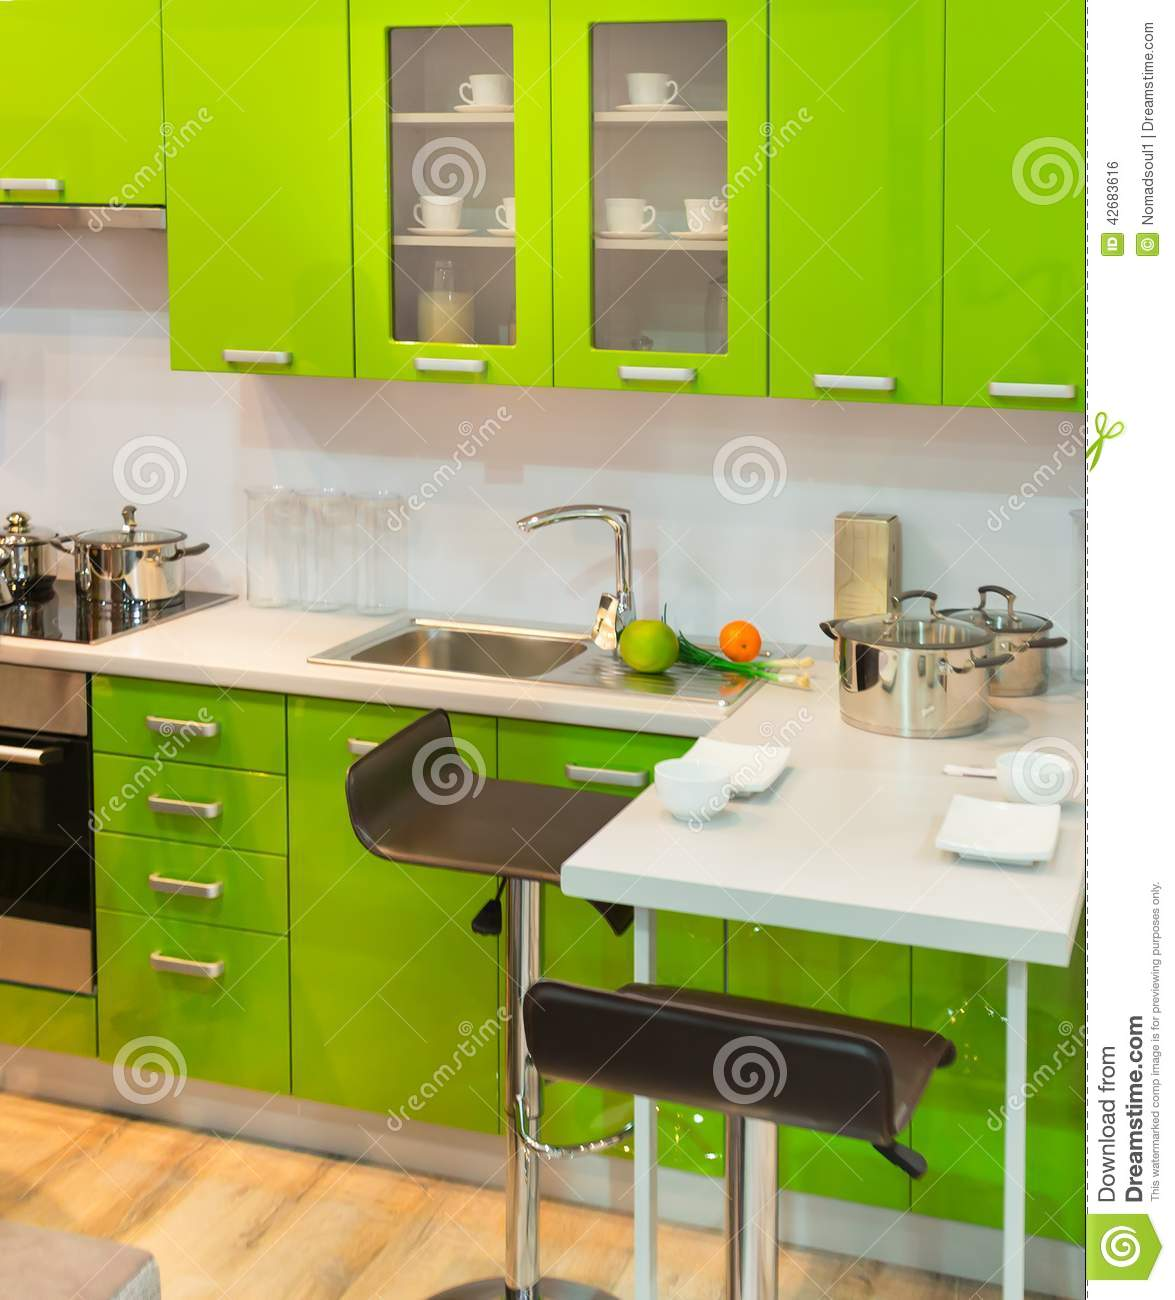 Modern green kitchen clean interior design stock photo Clean modern interior design